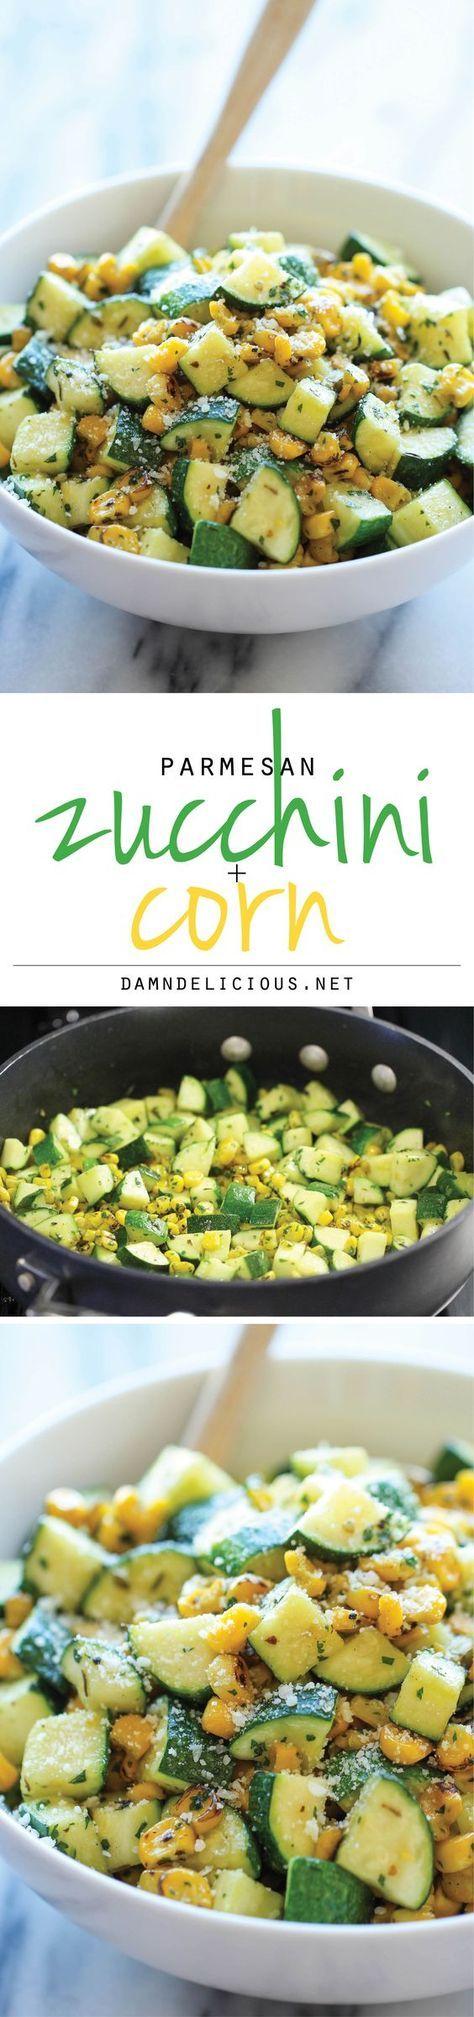 Parmesan Zucchini and Corn Vegetable Side Dish Recipe via Damn Delicious - A healthy 10 minute side dish to dress up any meal. It's so simple yet full of flavor!